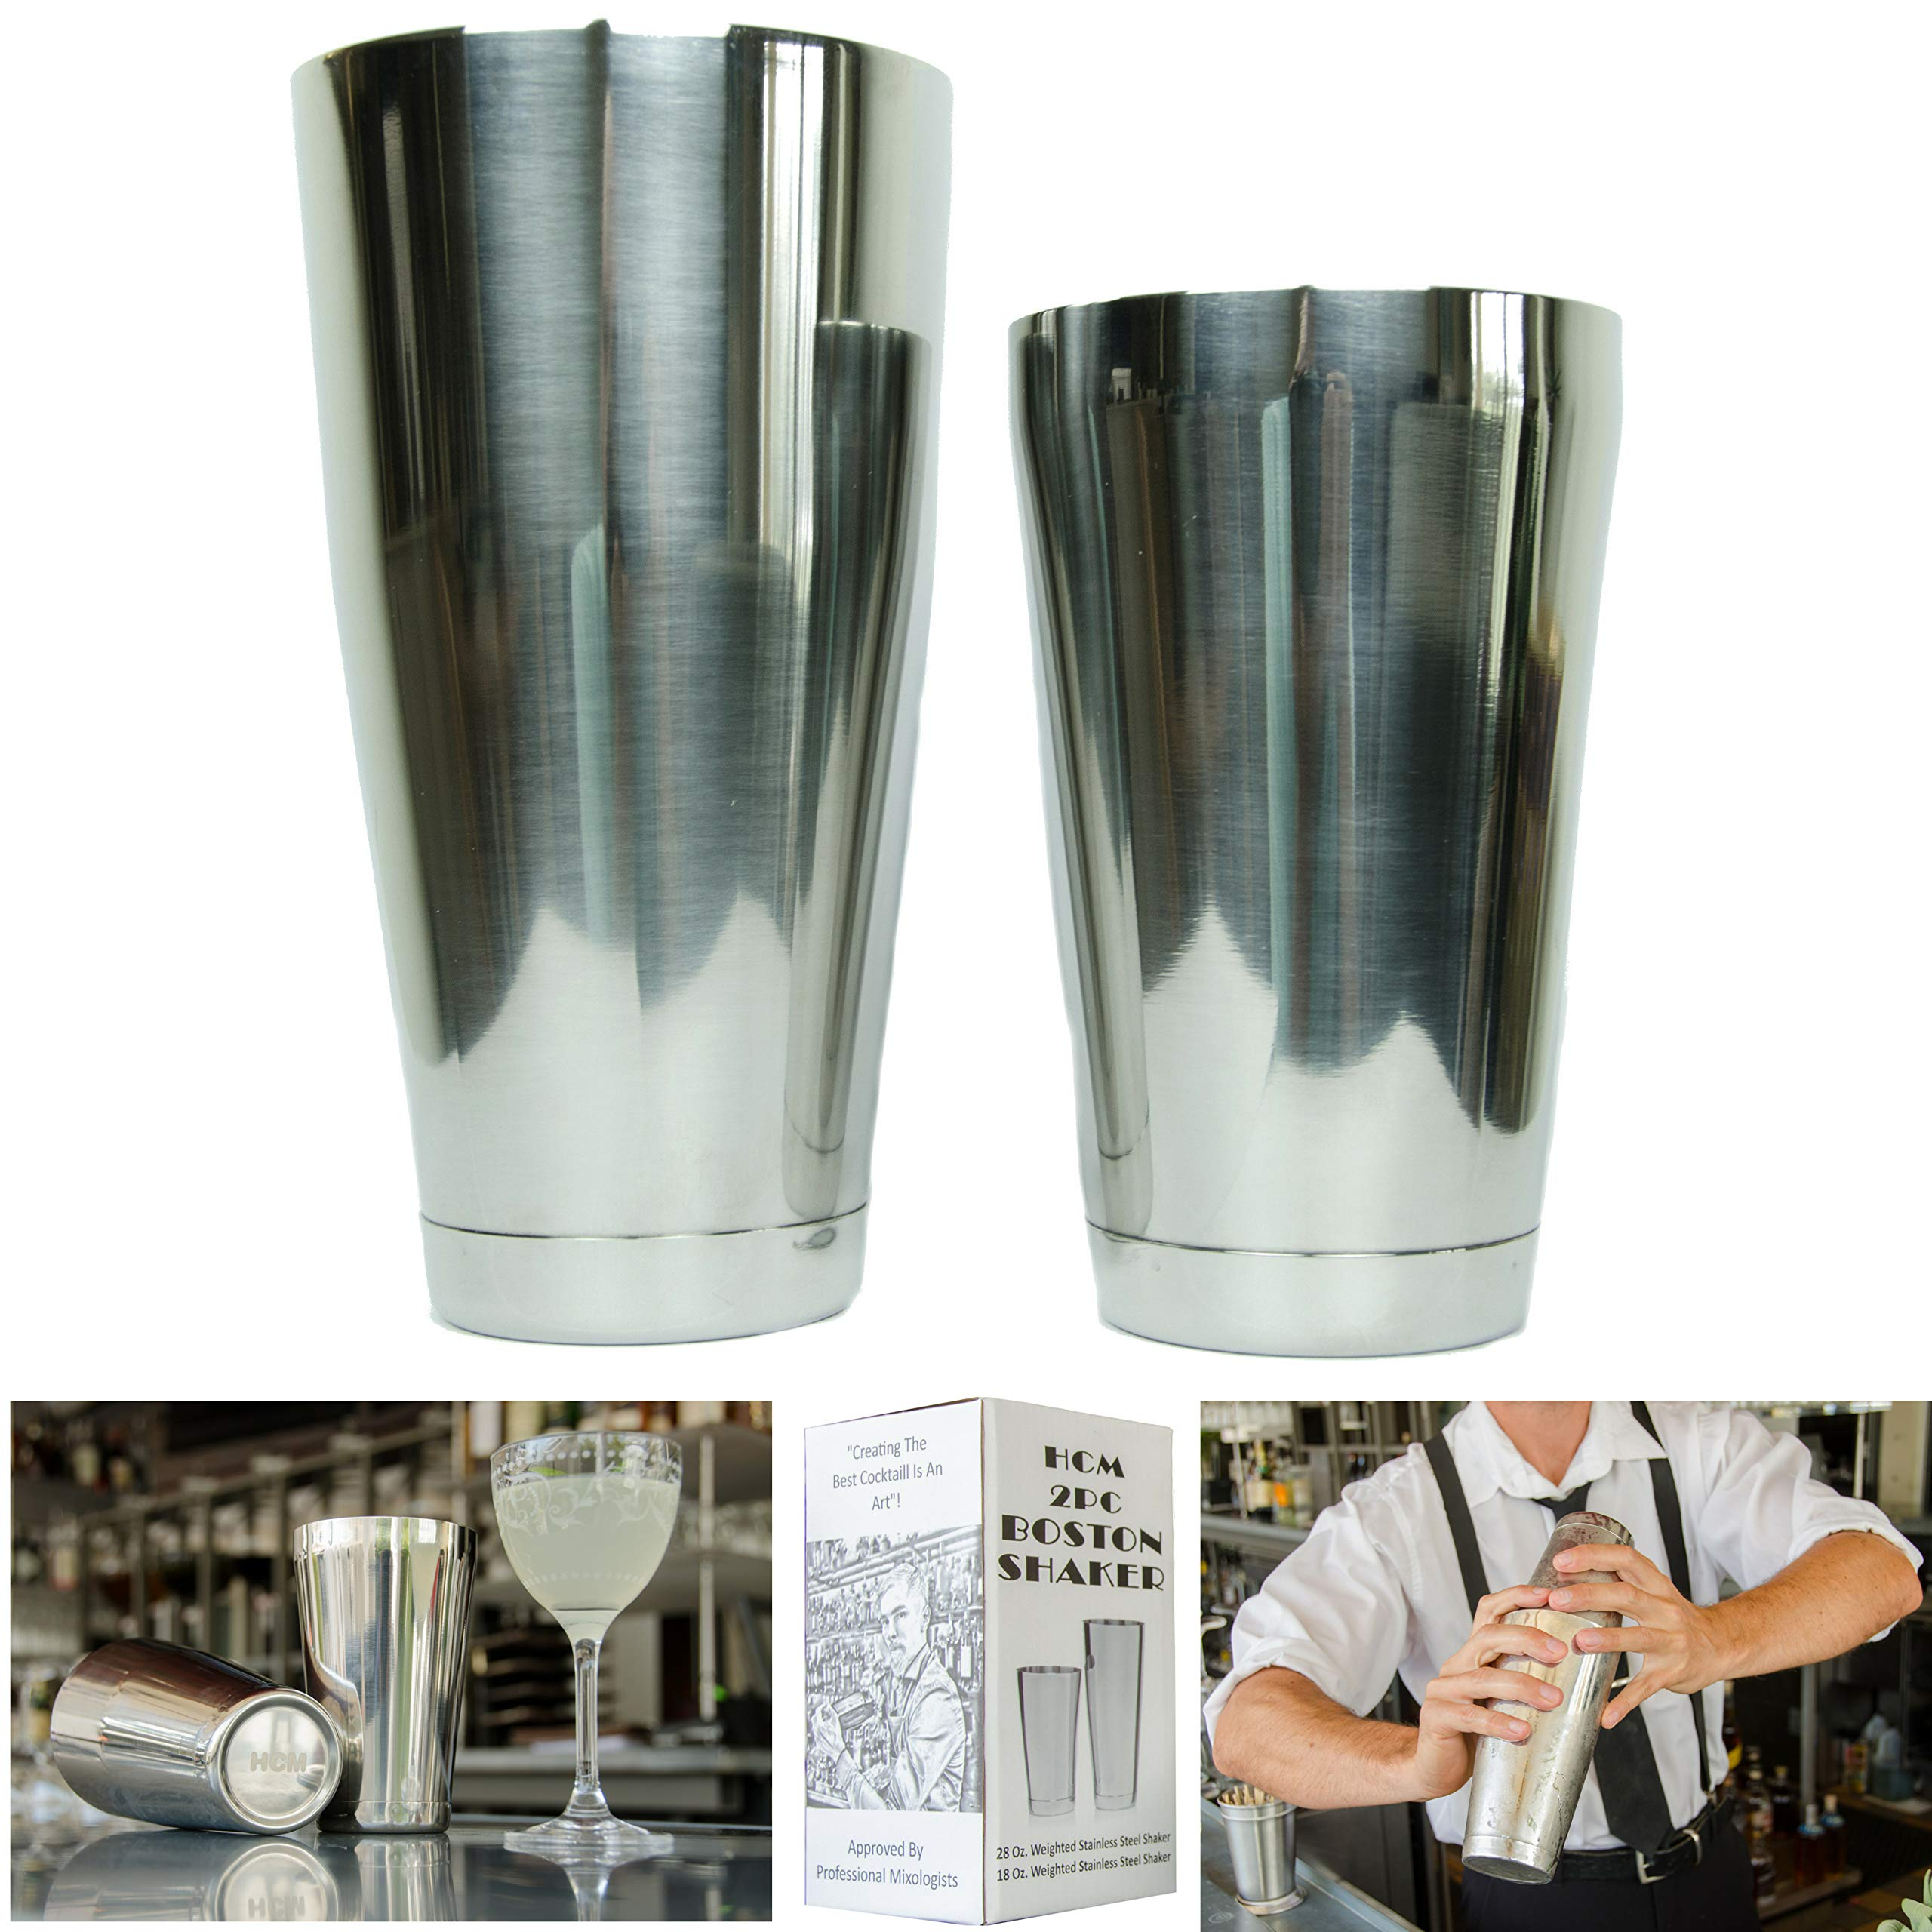 No.1 Stainless Steel Cocktail Boston Shakers 2pc Bar Set, 18oz & 28oz Weighted, Professional Bartender Drink Shaker, Great For Mixed Drinks, Cocktails, Martini, Perfect For Home & Commercial Bar Use